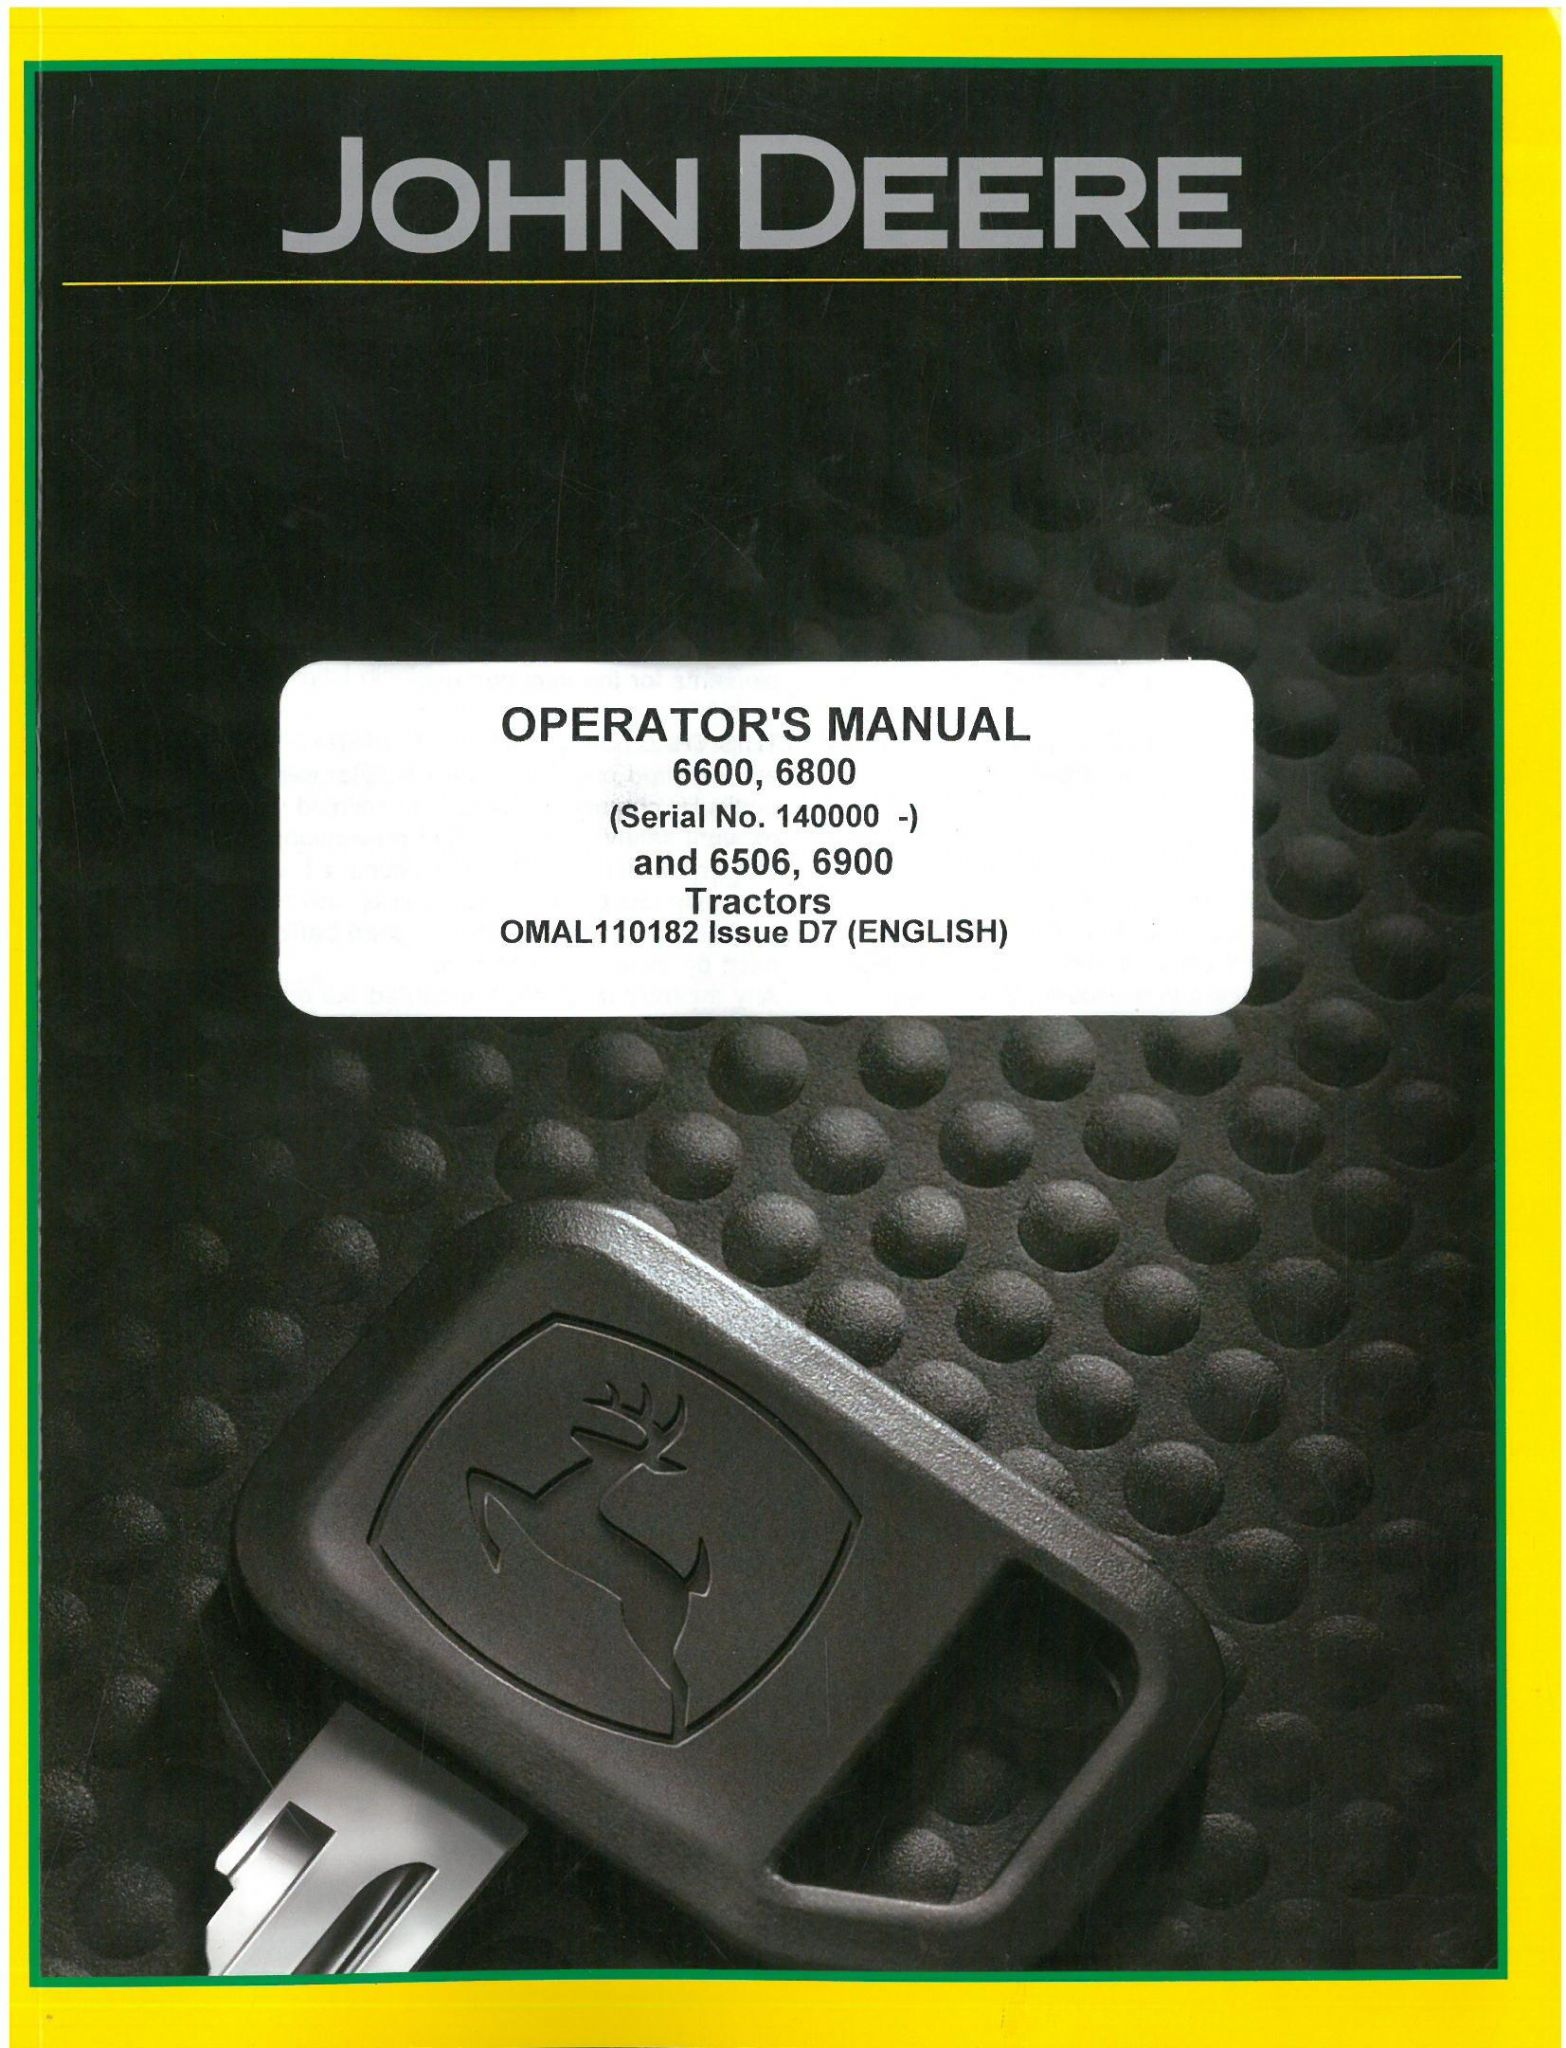 John Deere Tractor 6600 6800 6506 6900 Operators Manual - ORIGINAL MANUAL